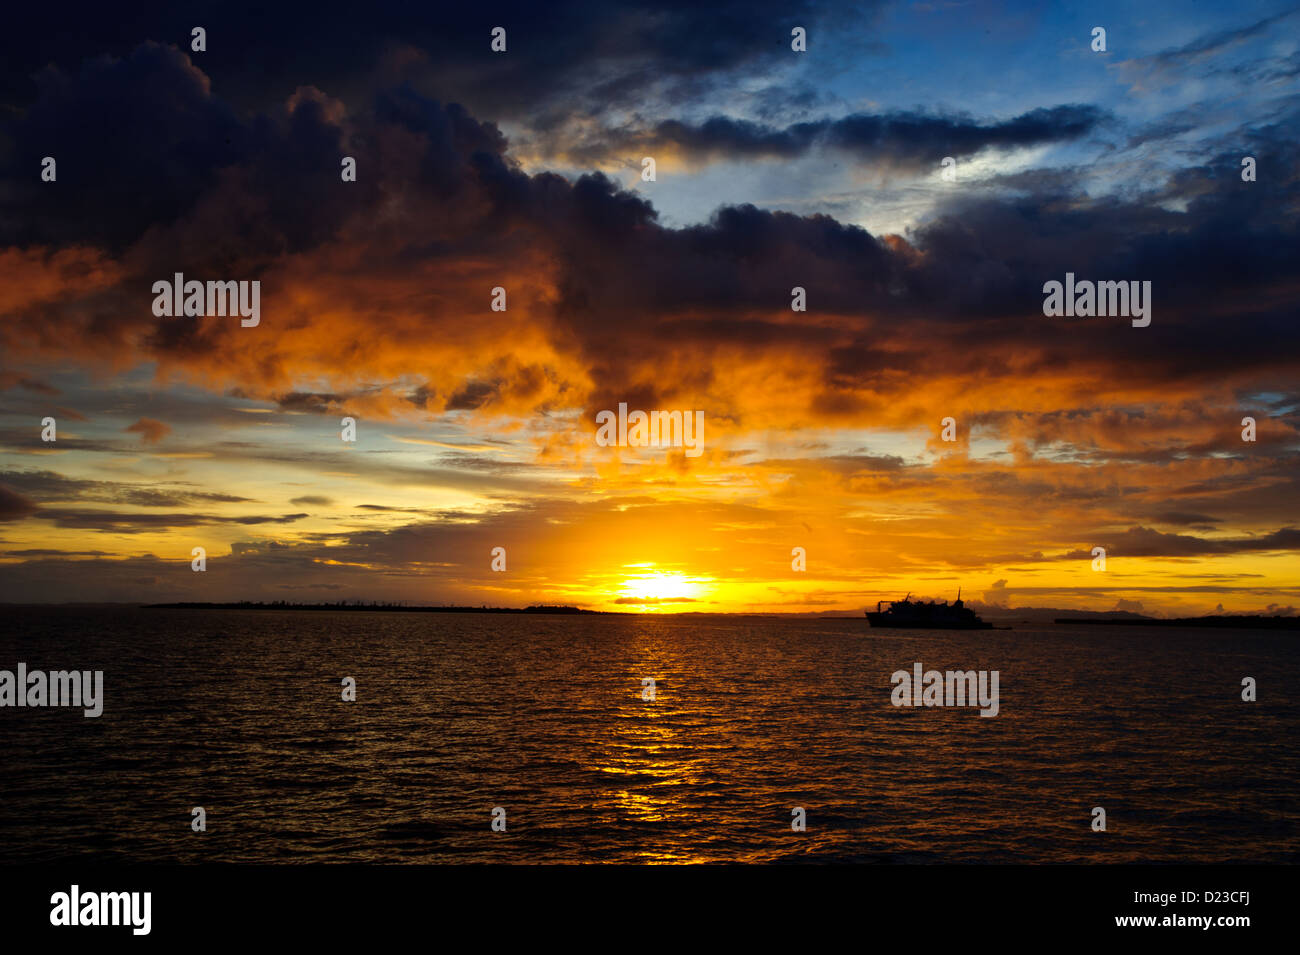 The sun setting on the flat calm ocean in Sorong Raja Ampat West Papua. Boat and Island silhouette, warm light. - Stock Image